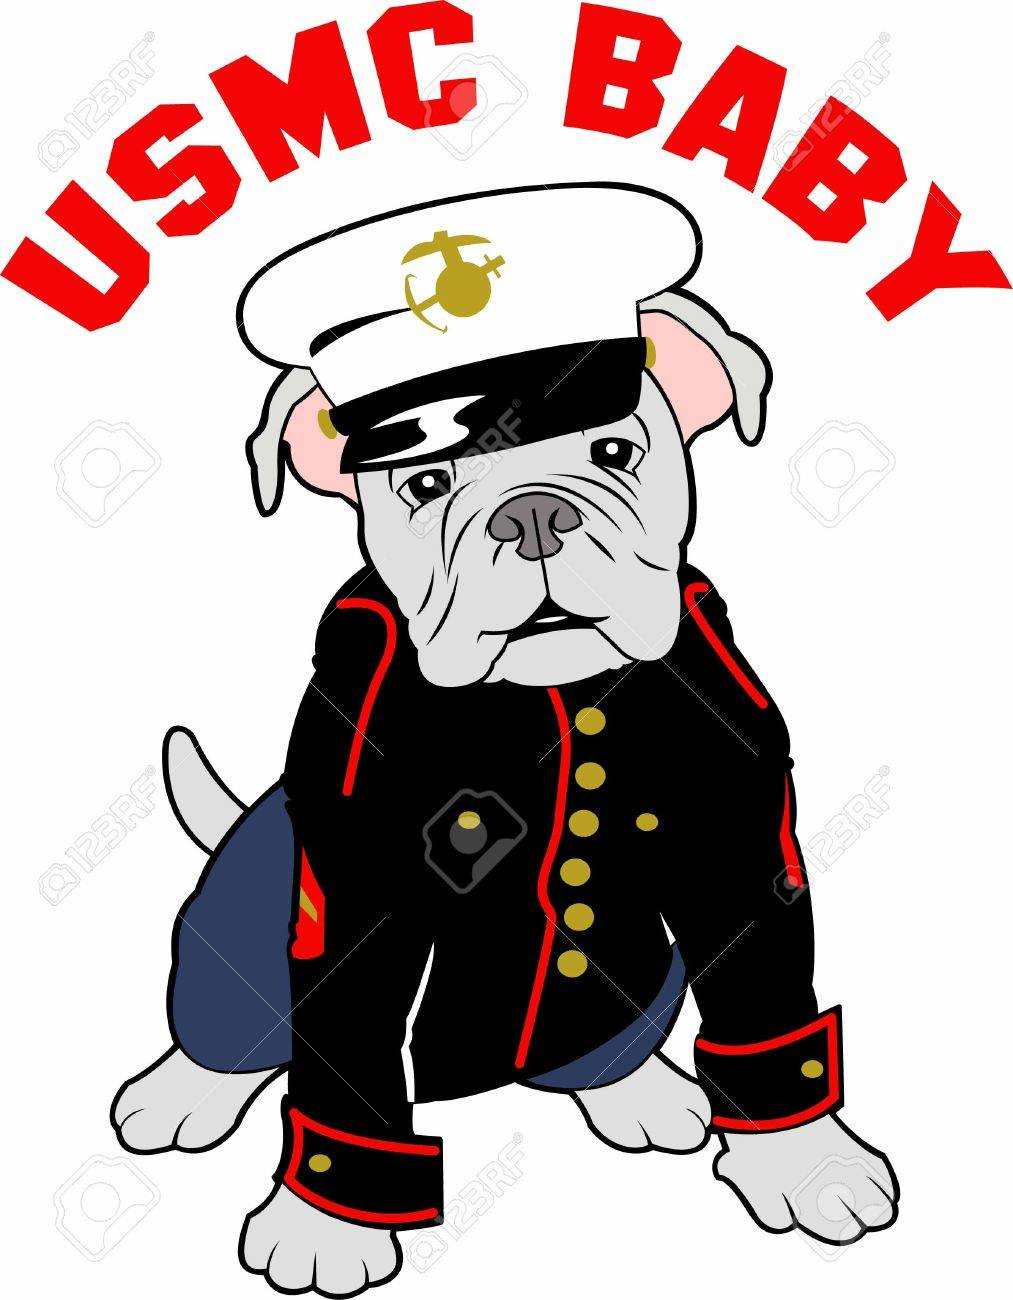 Marines can show their pride with a bulldog mascot. - 45244221